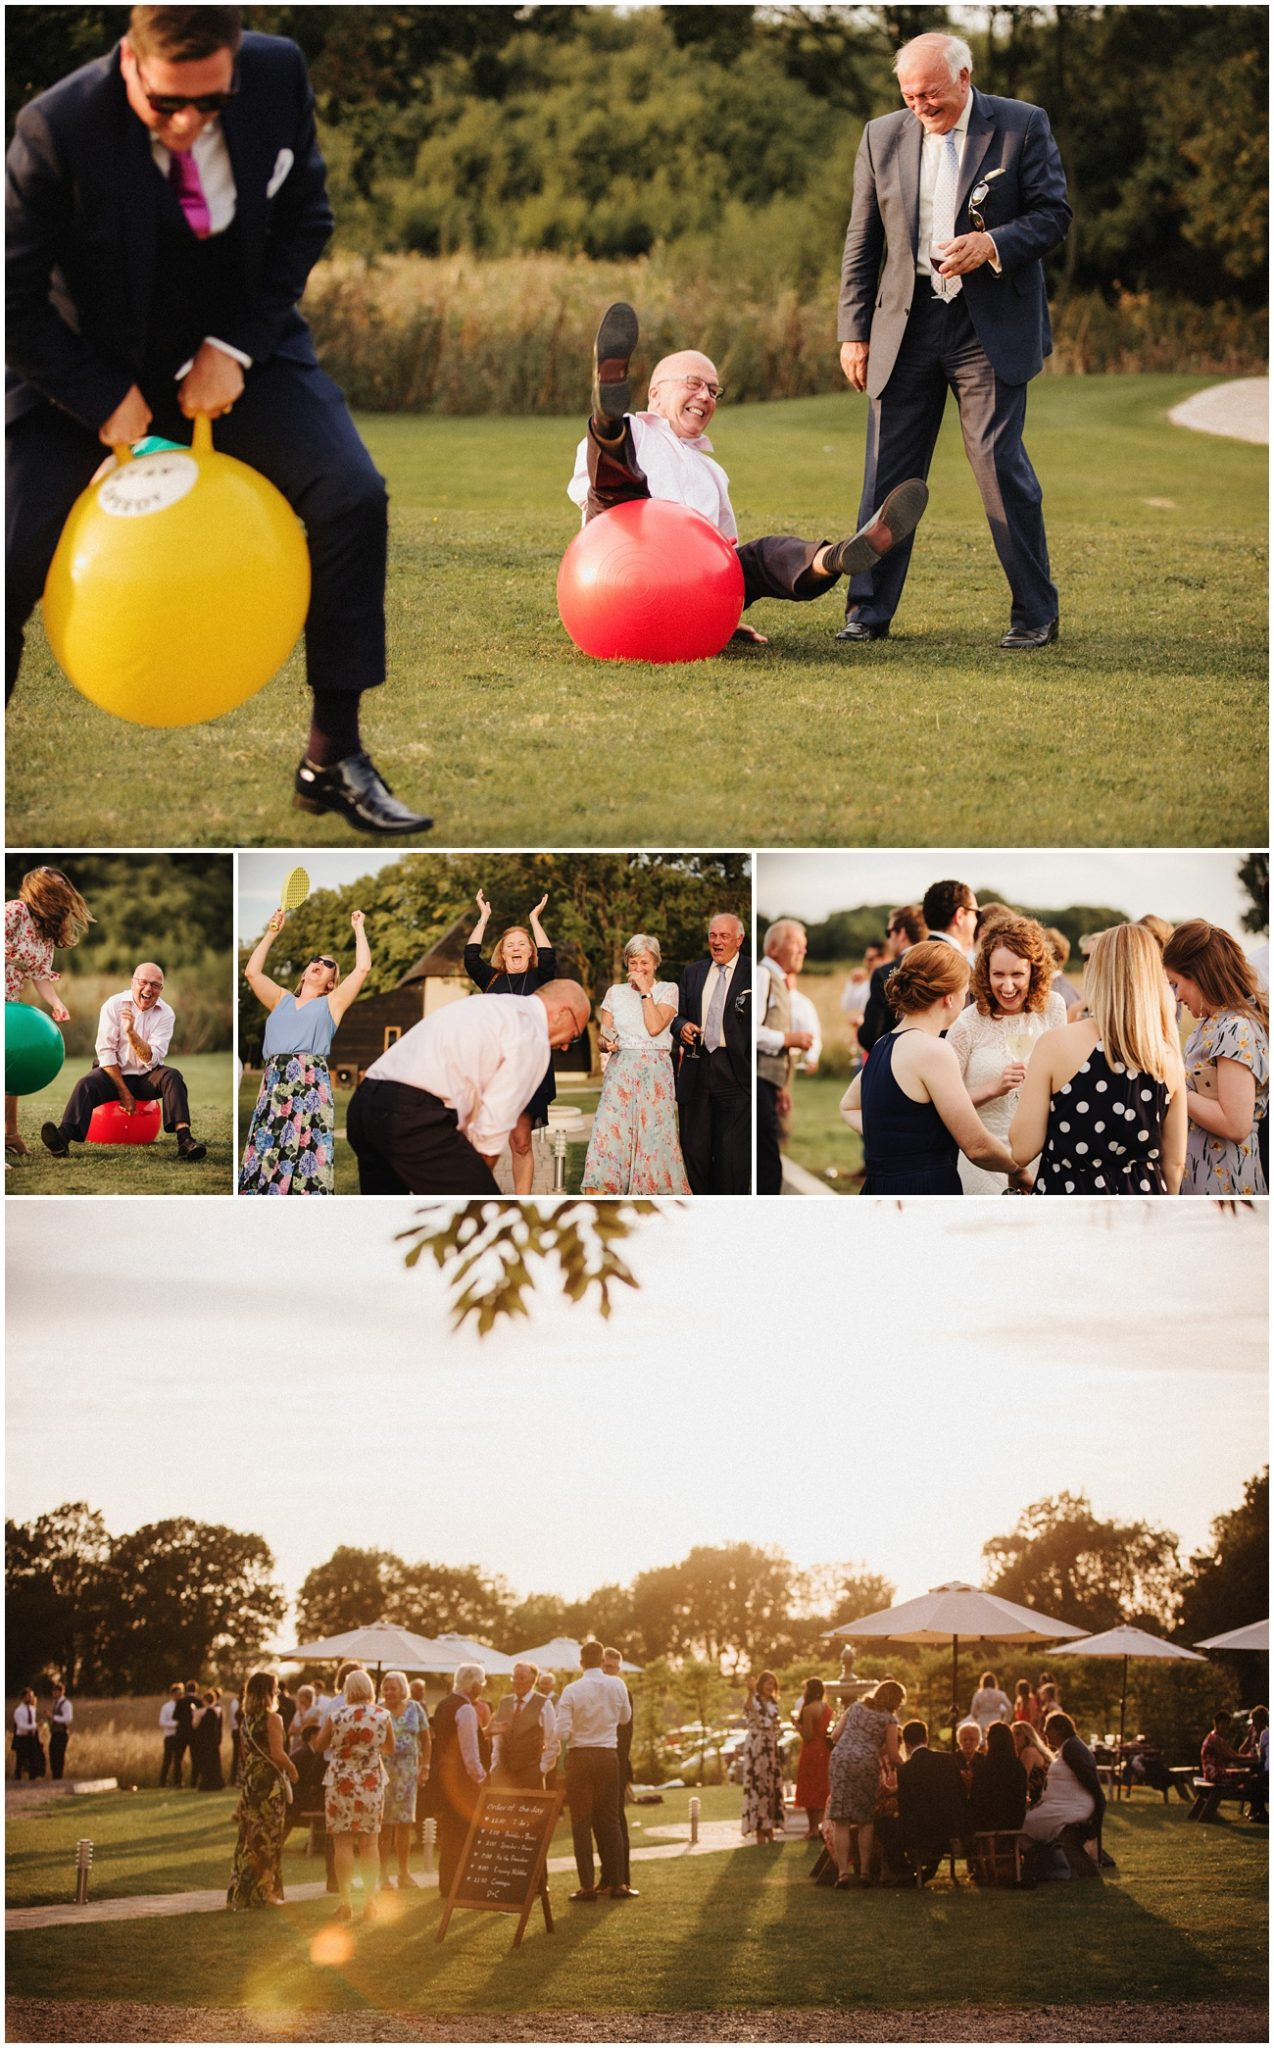 The wedding guests enjoy the sunshine and play lawn games